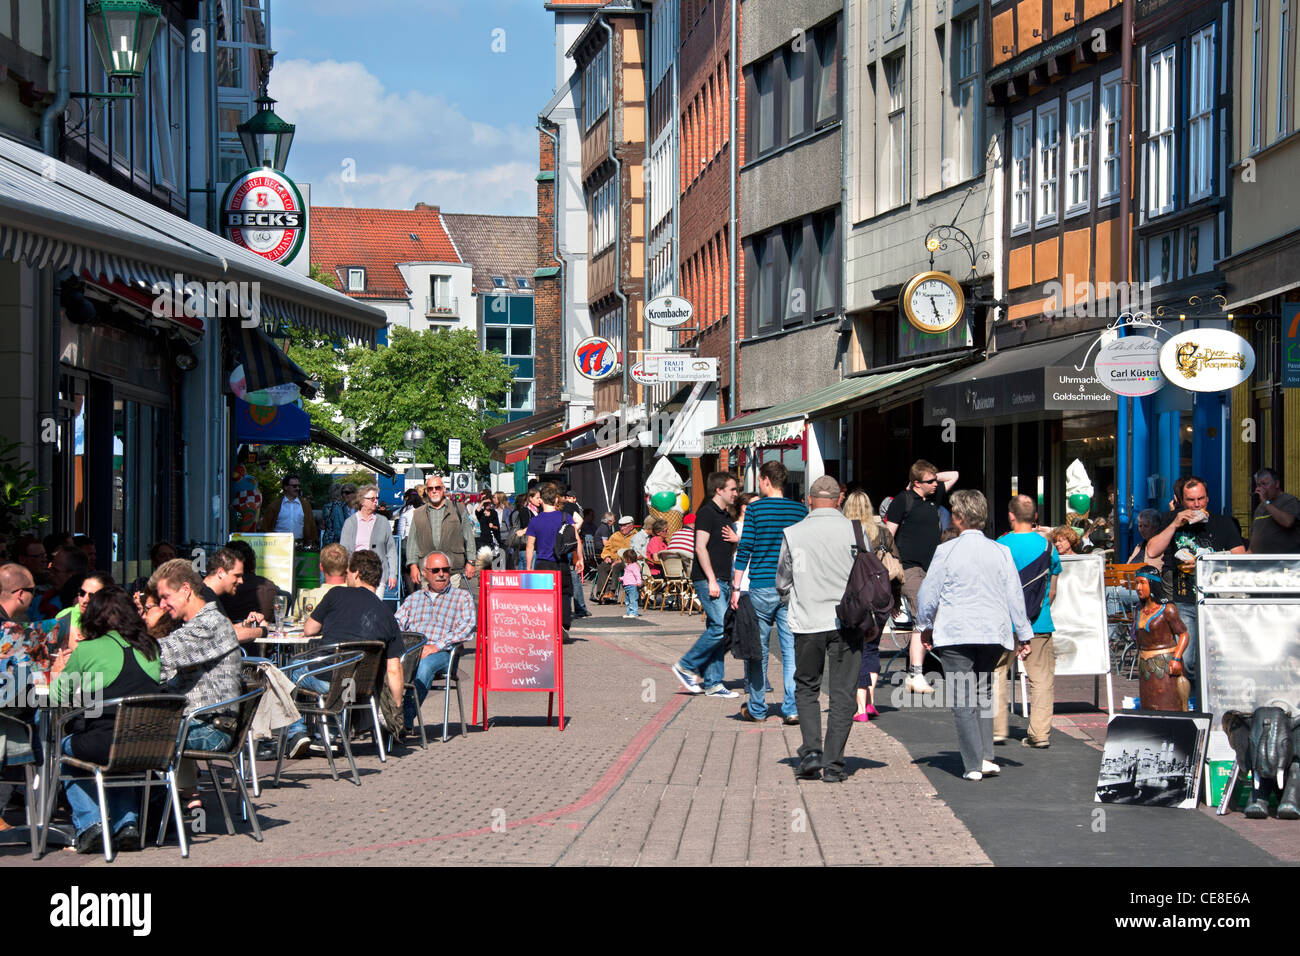 Tourists shopping in the Kramerstraße in the historic old town Hannover, Lower Saxony, Germany - Stock Image